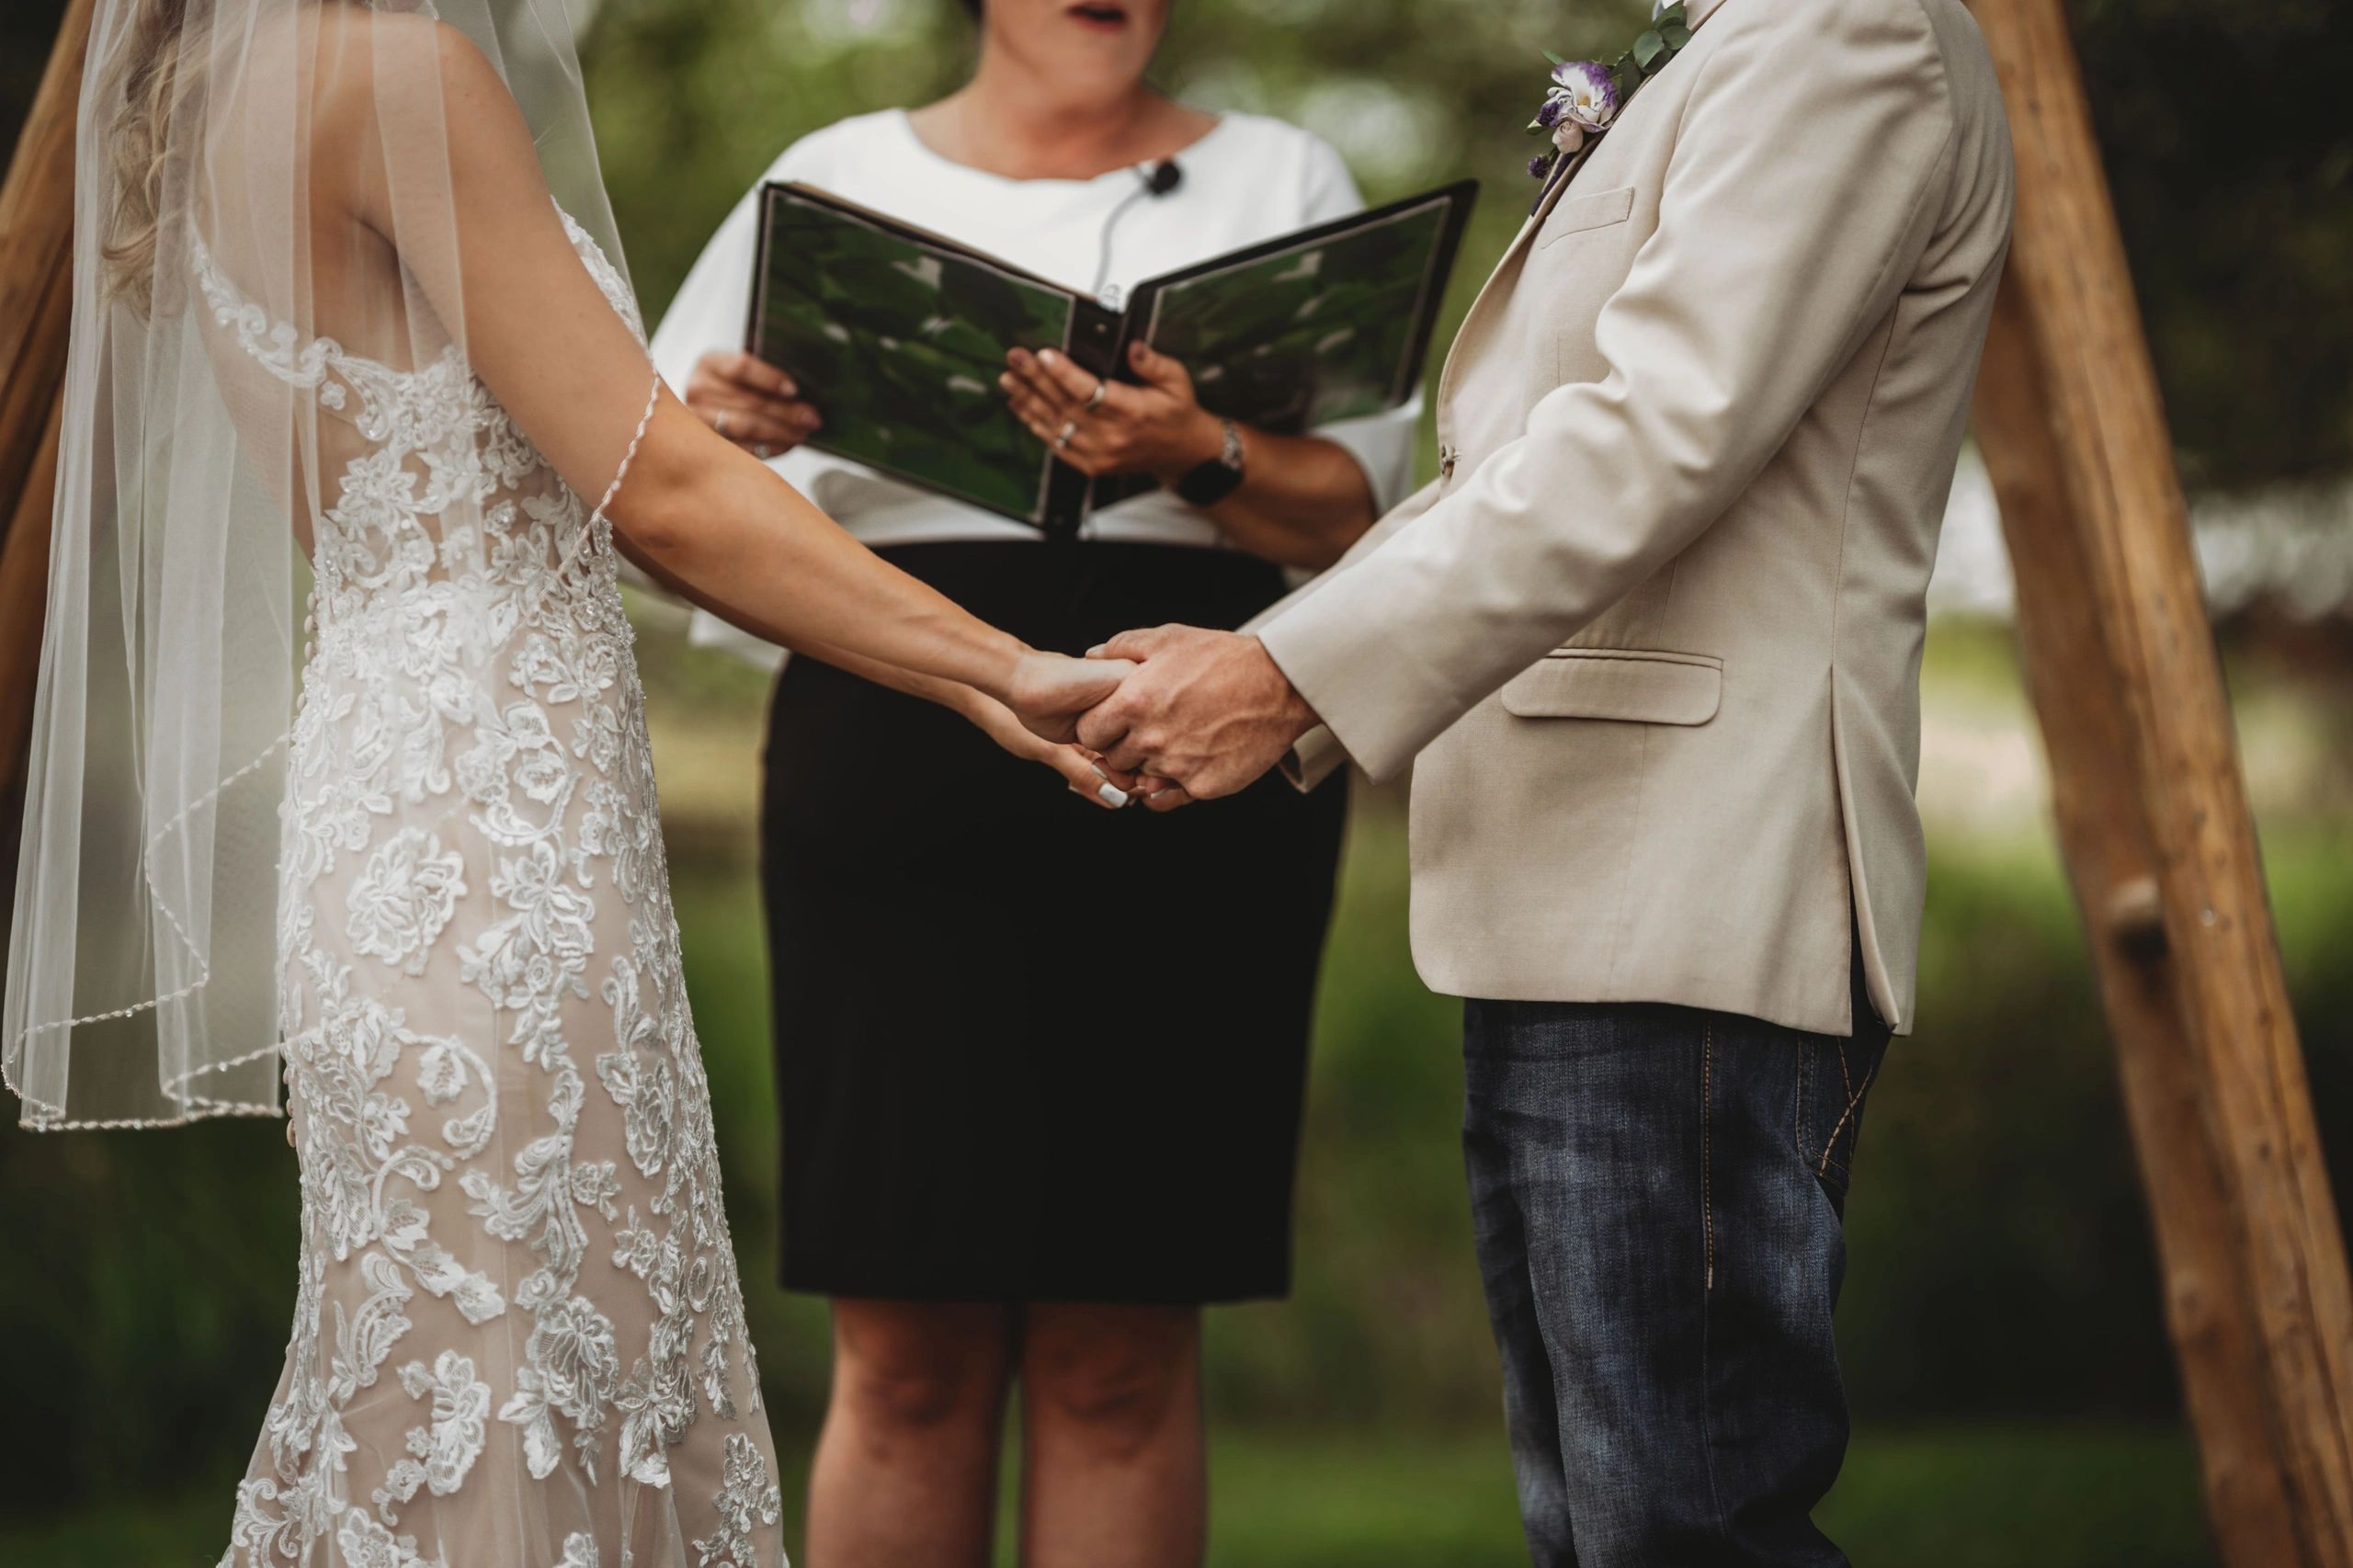 Wedding officiant, officiant, Dreamwolf Productions